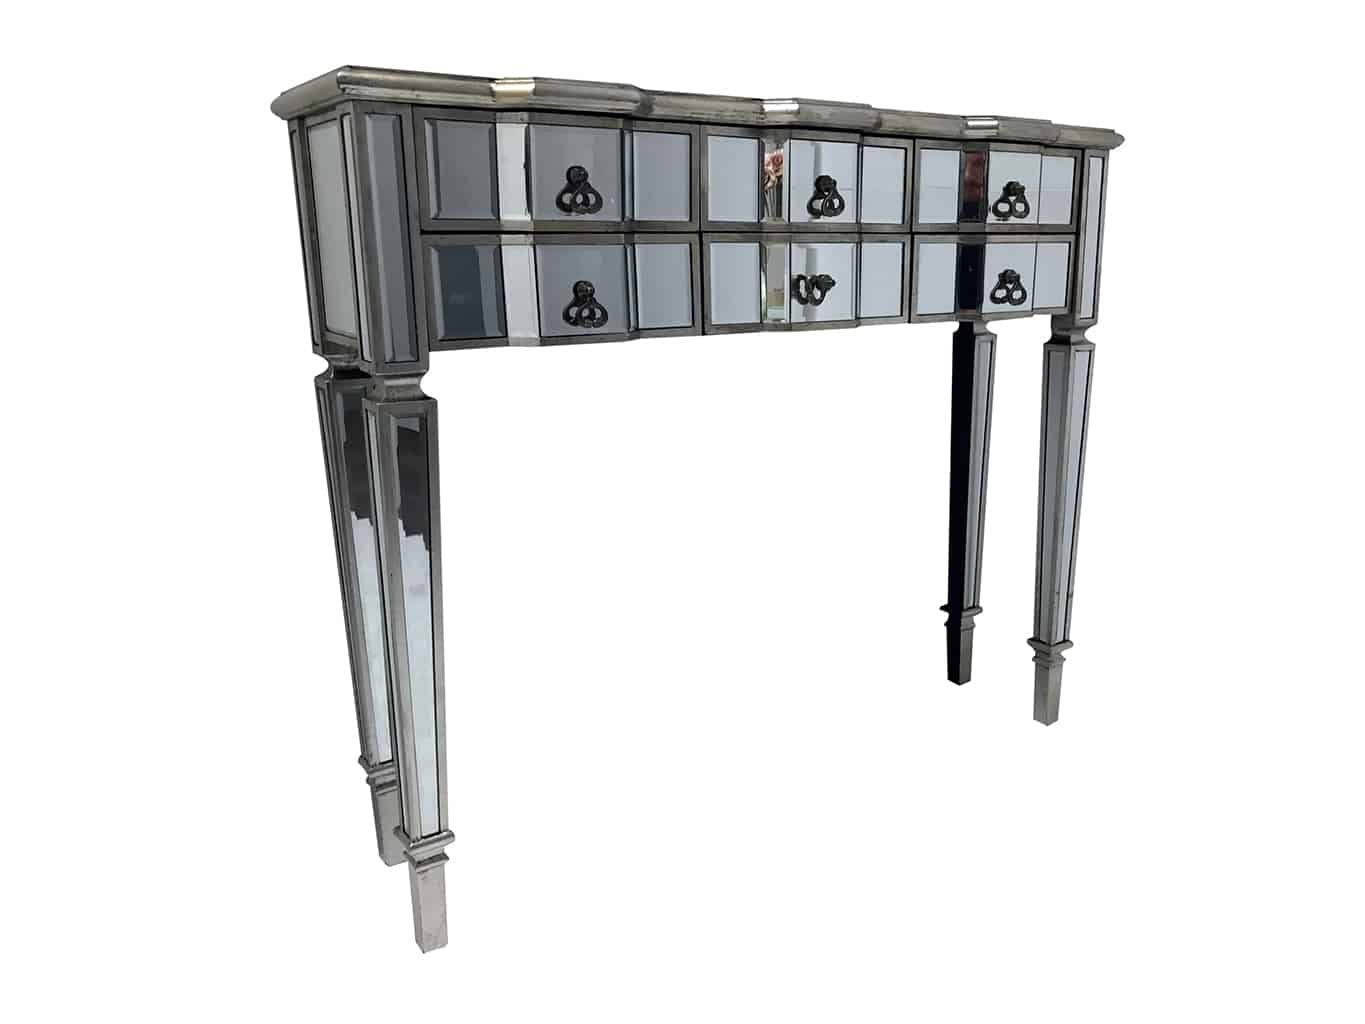 Charleston mirrored console table, six drawers, wood and mirror, antiqued silver, brass drop handles